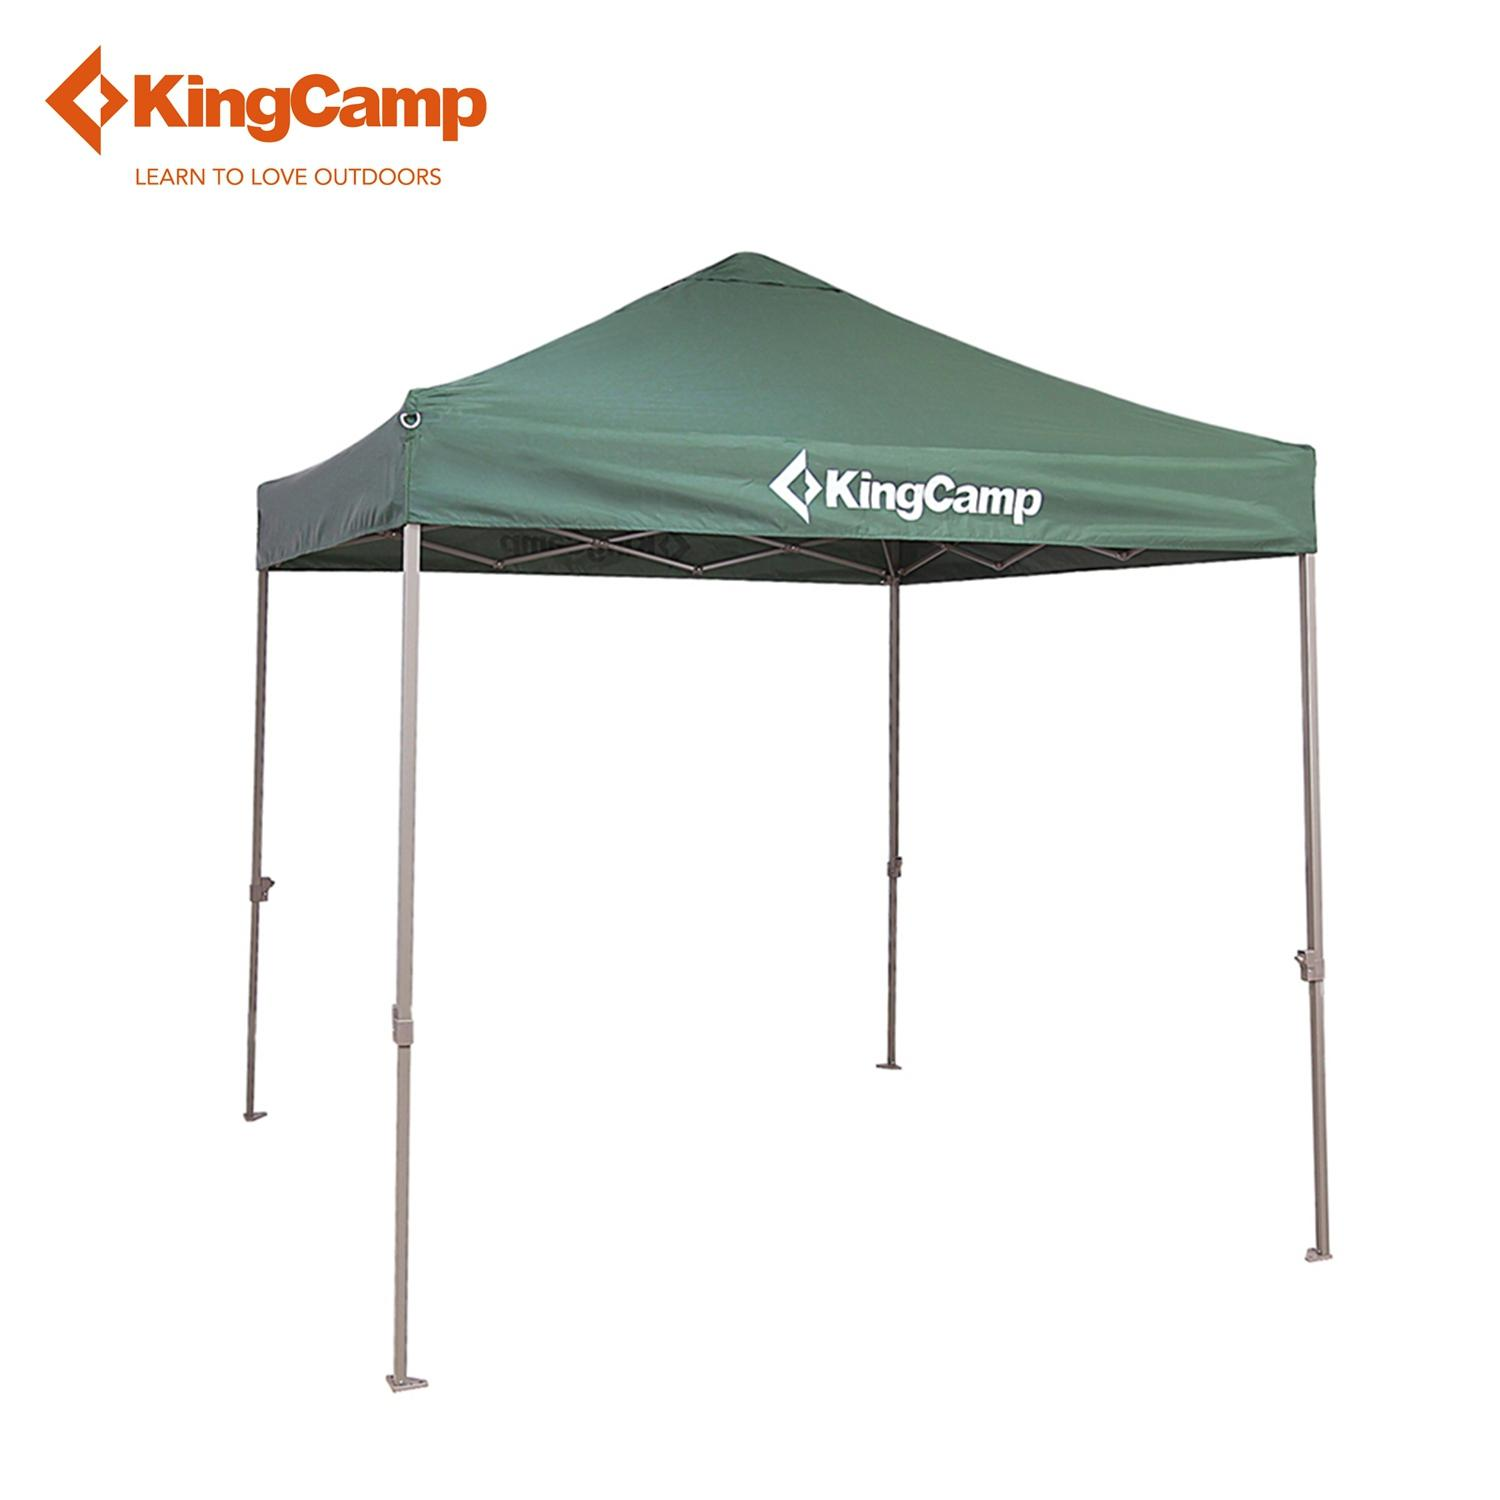 KingC& Portable Easy Up Sun Shelter Top Grade Outdoor Canopy Tent For Patio Party Picnic Commercial Fair Shelter Car Shelter Christmas Cards Shelters Of ...  sc 1 st  DHgate.com & KingCamp Portable Easy Up Sun Shelter Top Grade Outdoor Canopy Tent ...